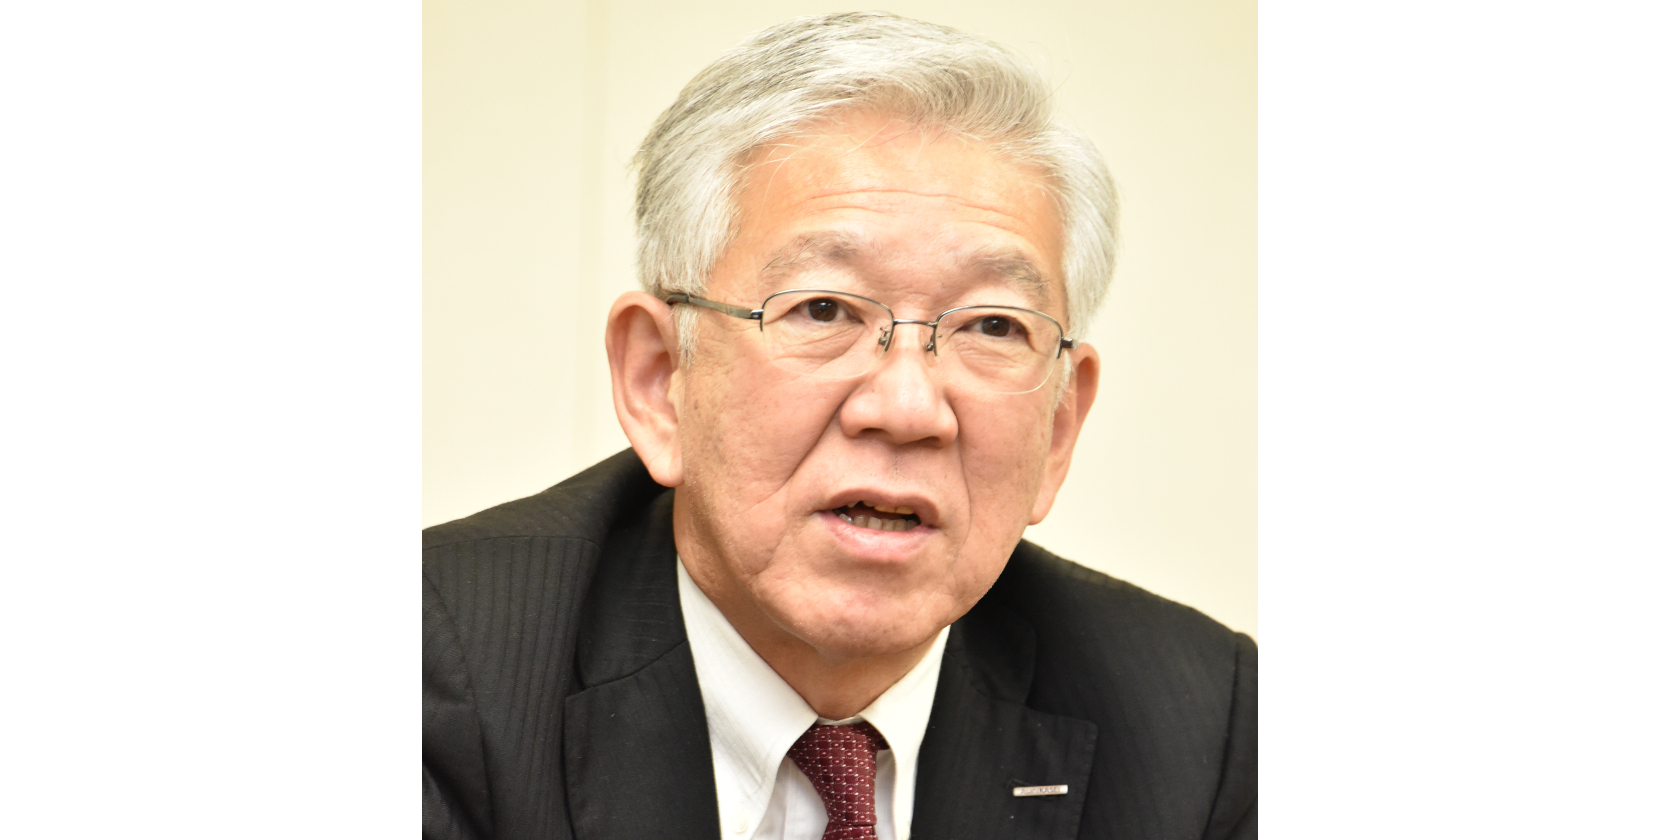 Interview: Asahi Kasei President Hideki Kobori Highlights Growth Under New Company Structure